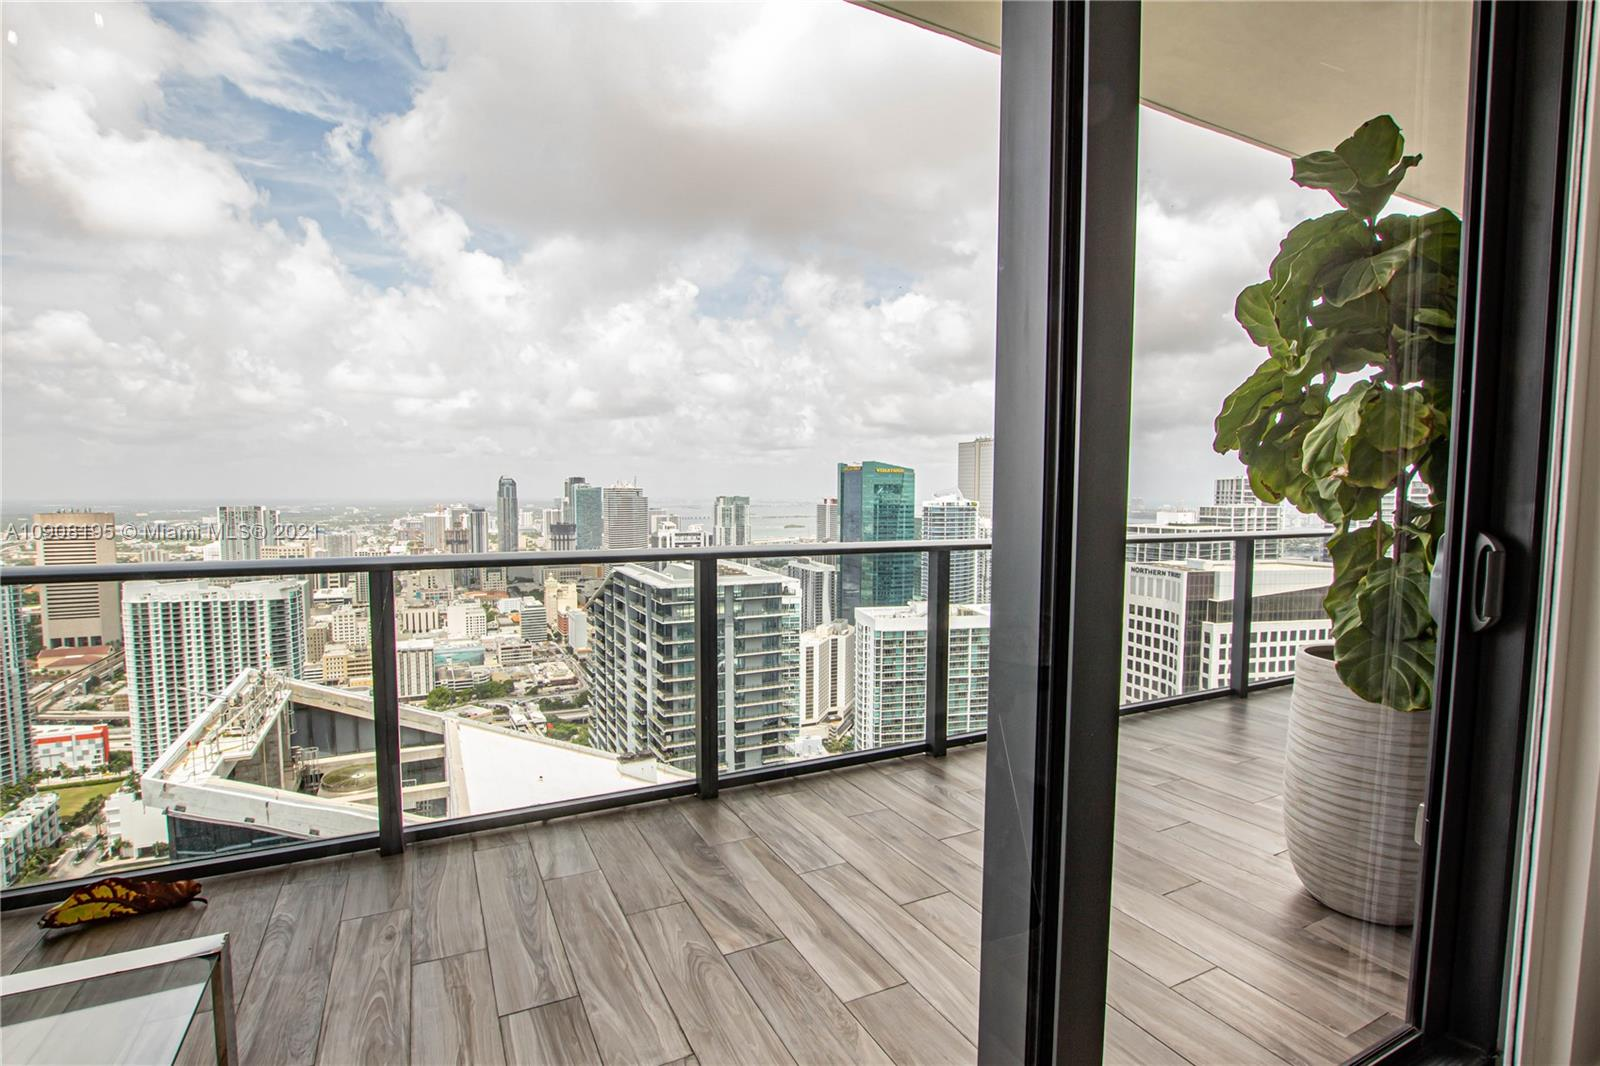 REDUCED by $245,000.00! MOTIVATED SELLER! UNOBSTRUCTED VIEWS! 5-PARKING ASSIGNED PARKING SPACES! Comes with a rare option 1 private wine cellar on 46 Floors! SLS LUX, best views of the city and the Miami River. Italkraft kitchen beautiful marble countertops & Sub-Zero appliances and a tablet wireless control pad. Floor to ceiling windows throughout, private elevator foyer. Enjoy tennis court, rock-climbing wall, basketball court and full-service fitness center. CALL NOW FOR A PRIVATE SHOWING.